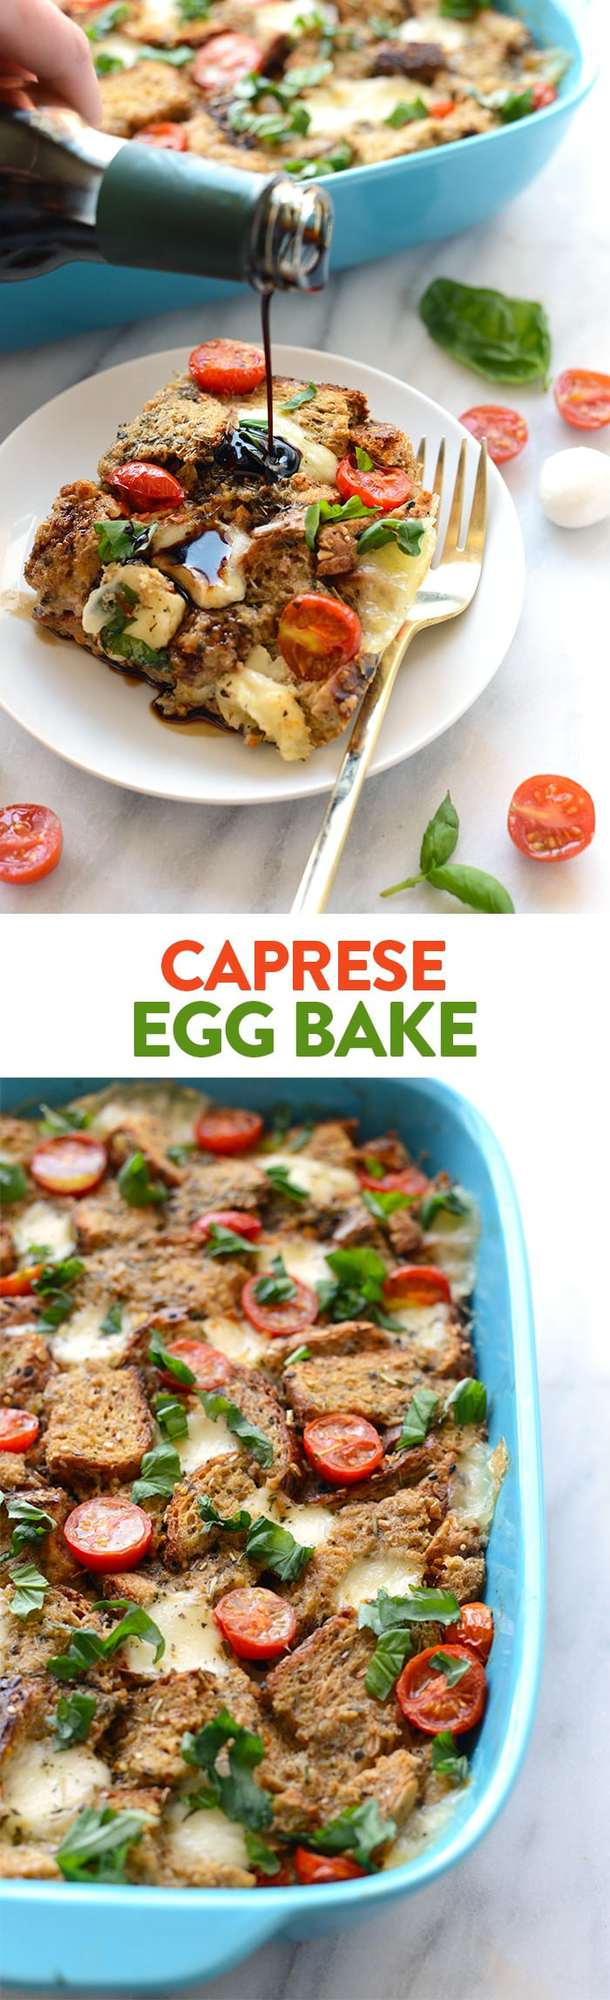 This Caprese Egg Bake recipe is a fusion between your classic egg bake and caprese salad making it the ultimate savory breakfast (lunch or dinner!).